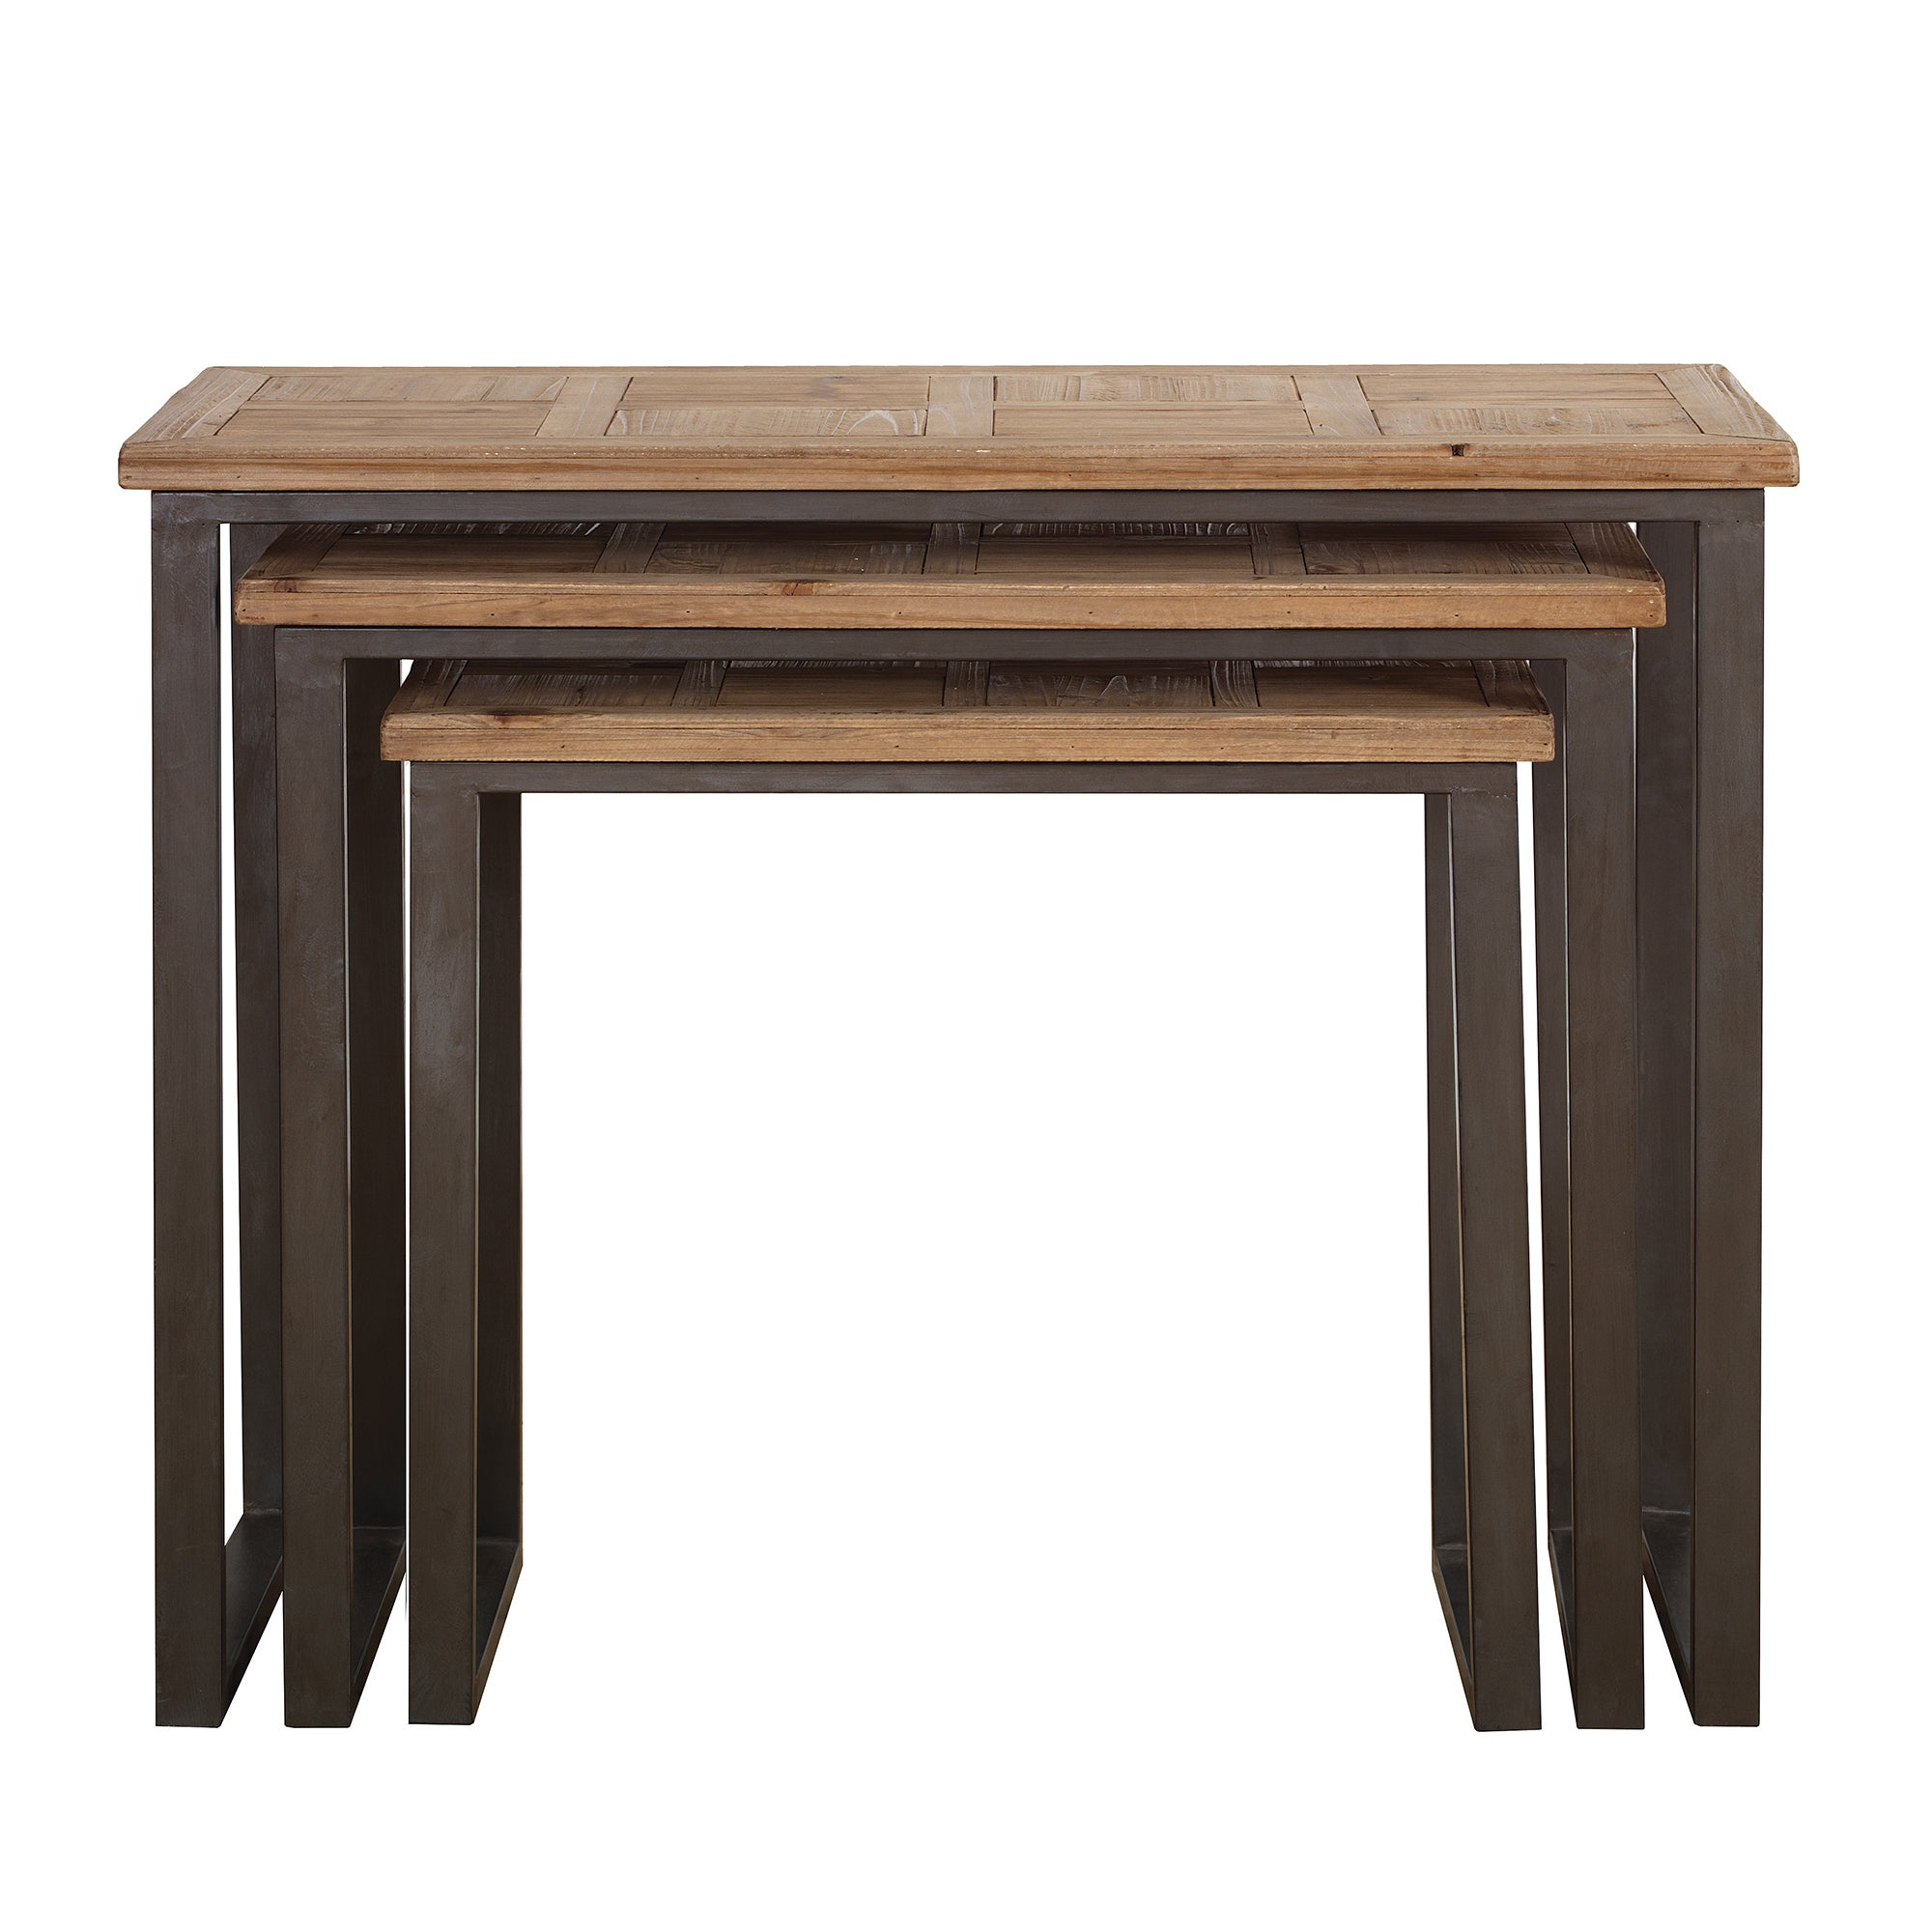 Buy cheap console tables contemporary compare furniture prices for best uk deals - Dunelm console table ...